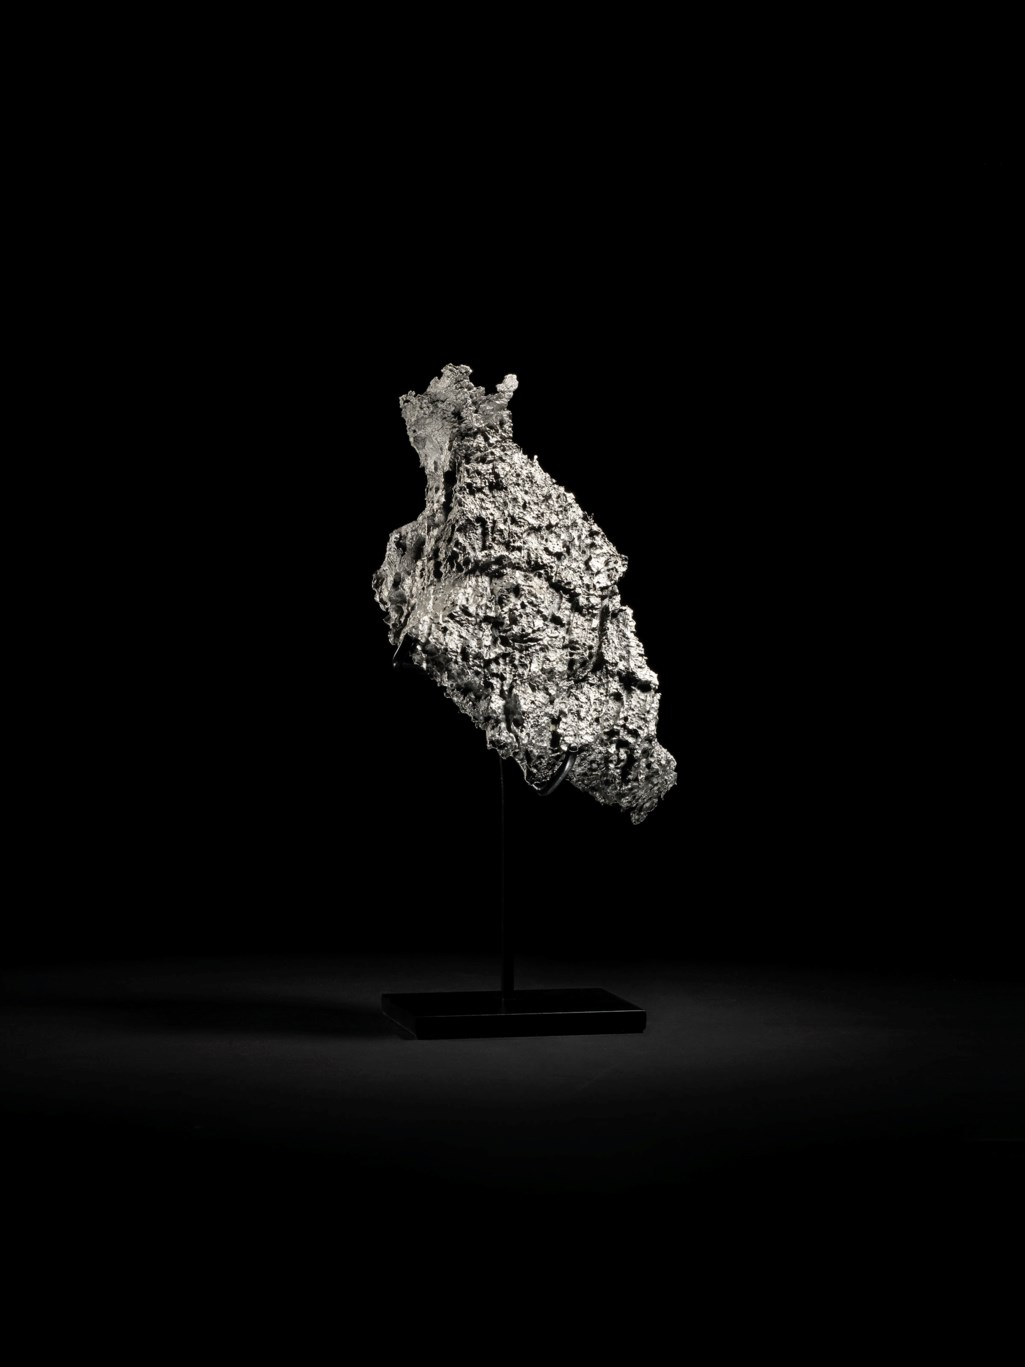 A DRONINO METEORITE - ABSTRACT FIGURE FROM OUTER SPACE